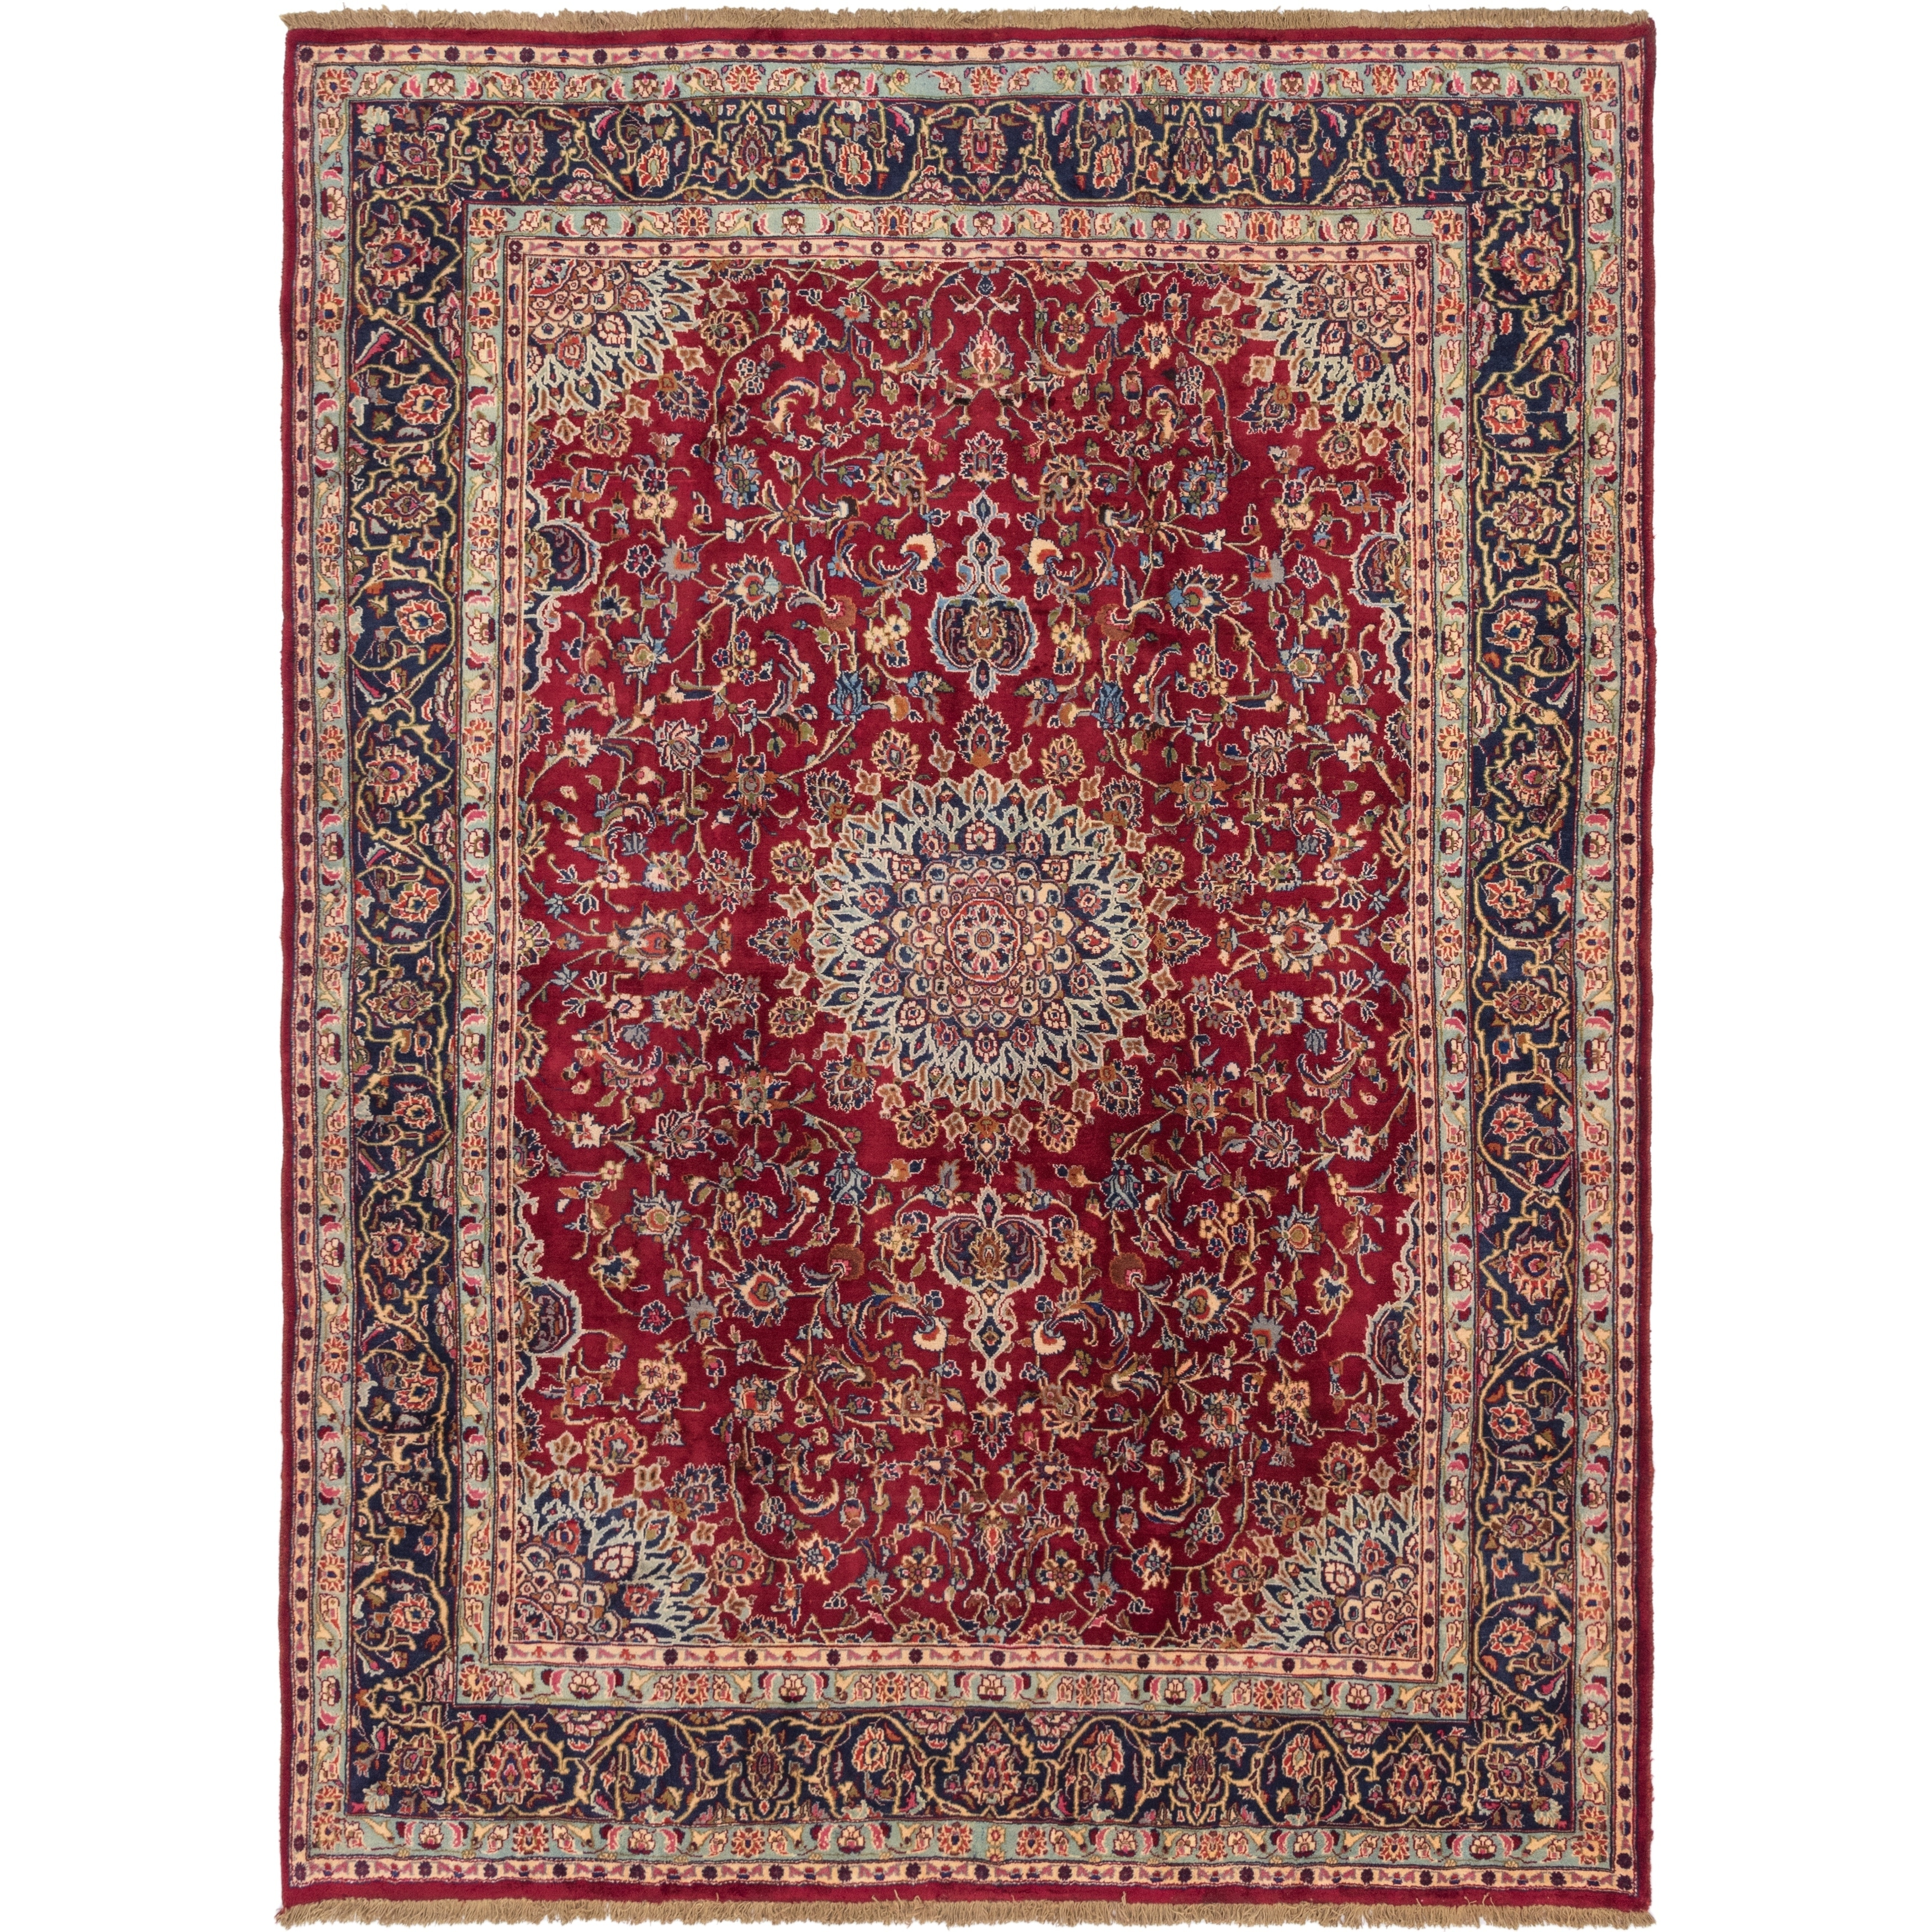 Hand Knotted Kashmar Wool Area Rug - 9 7 x 12 9 (Red - 9 7 x 12 9)